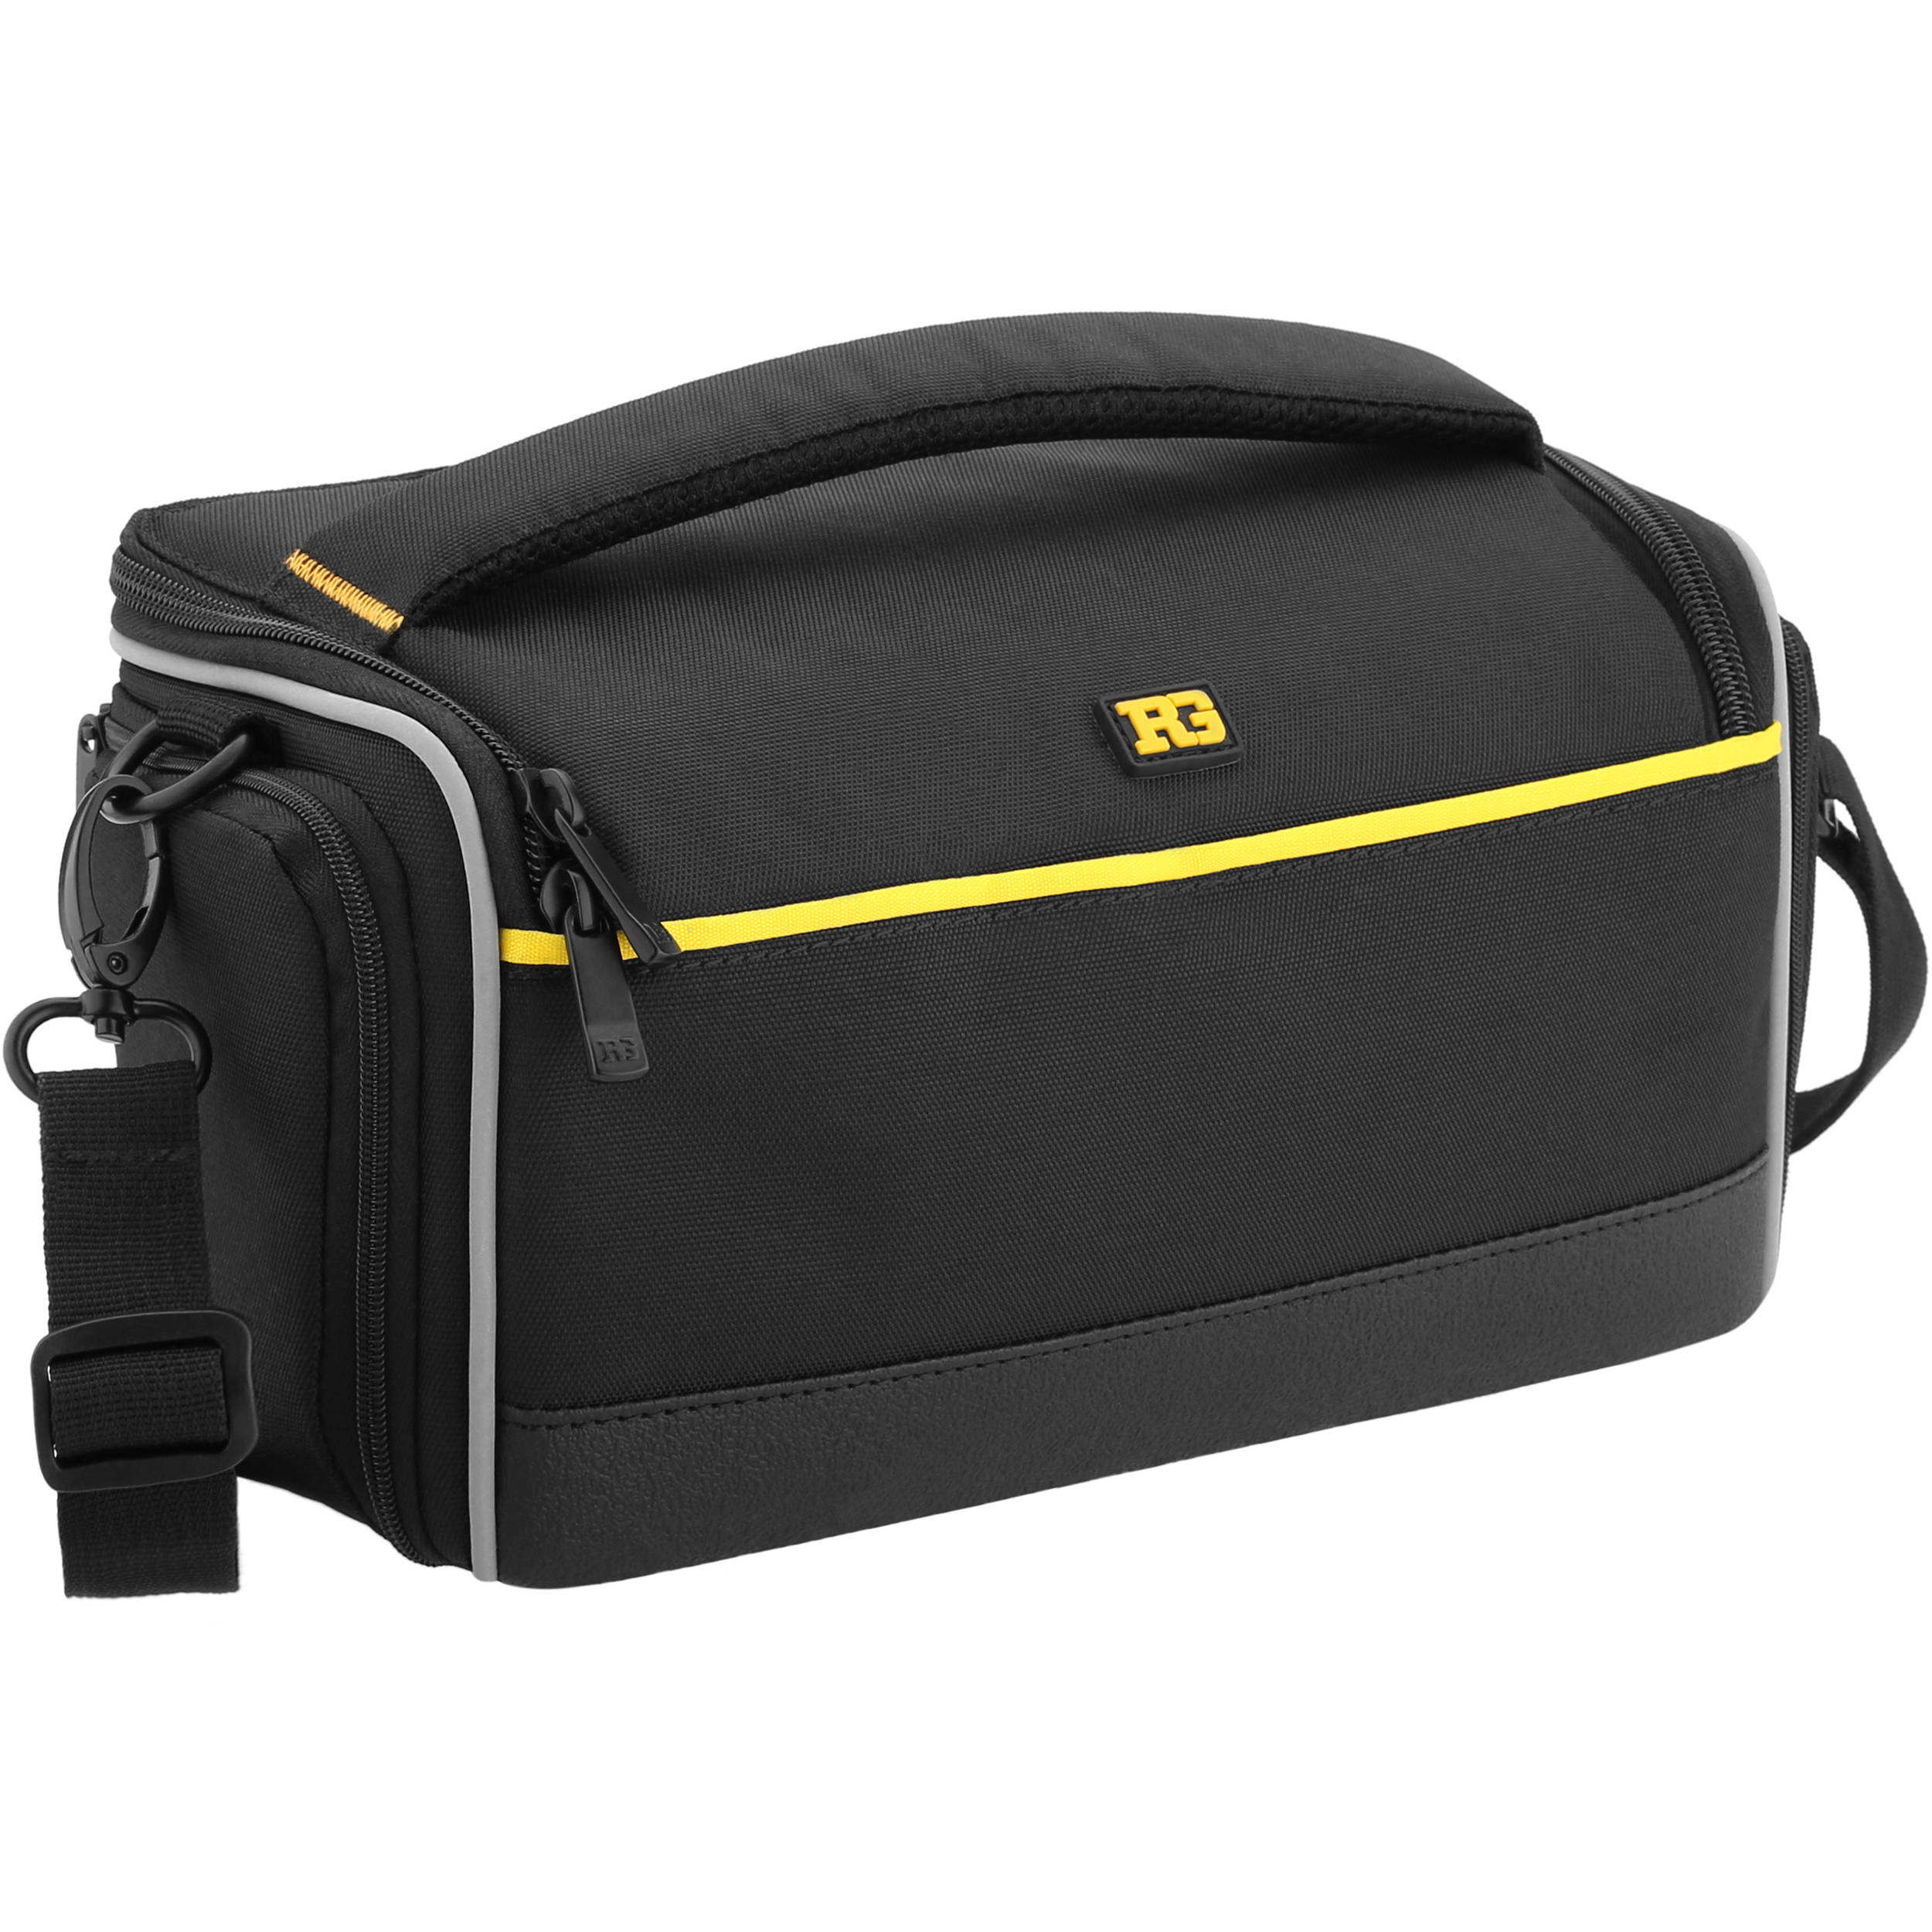 Ruggard Onyx 35 Camera Camcorder Shoulder Bag